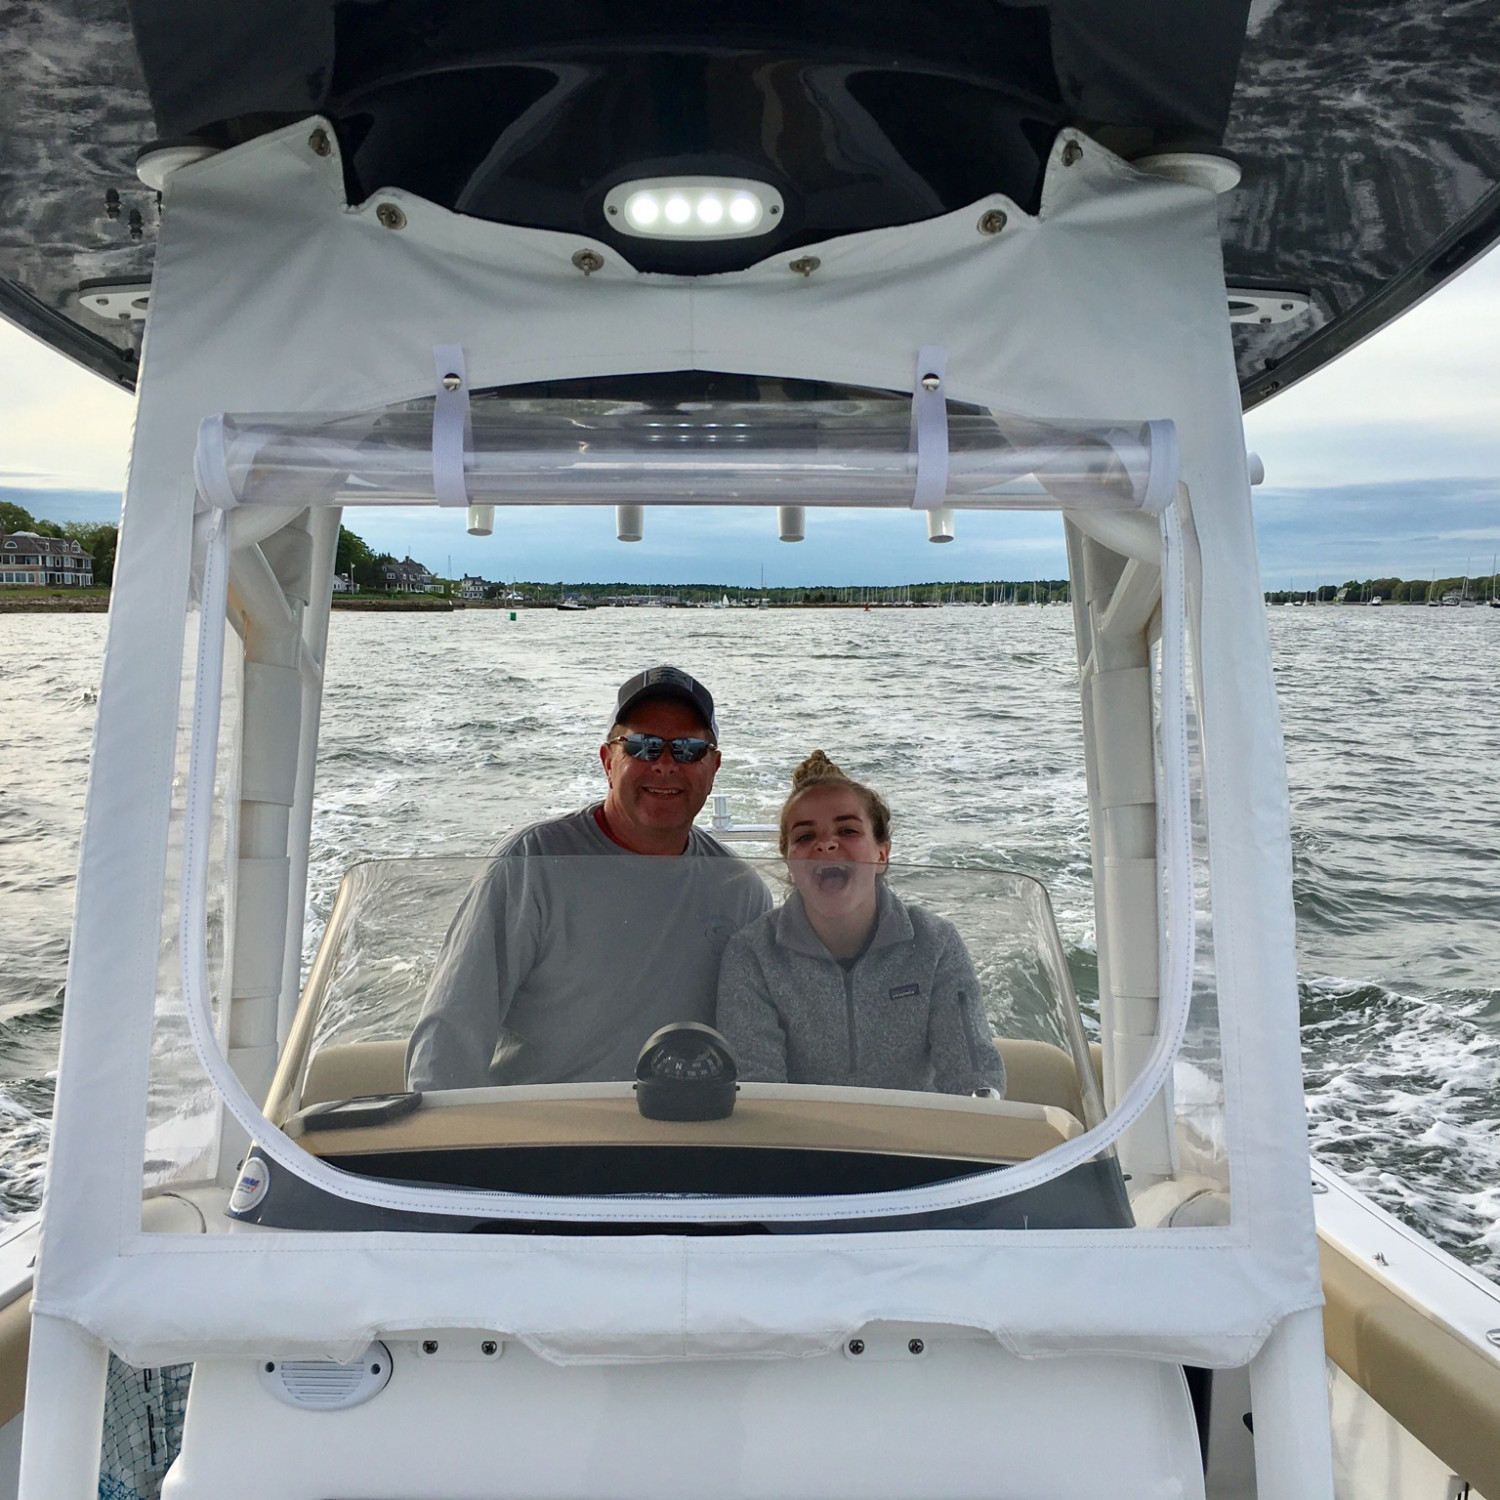 Title: Dad /daughter  Time - On board their Sportsman Open 232 Center Console - Location: Marion, MA. Participating in the Photo Contest #SportsmanFebruary2018